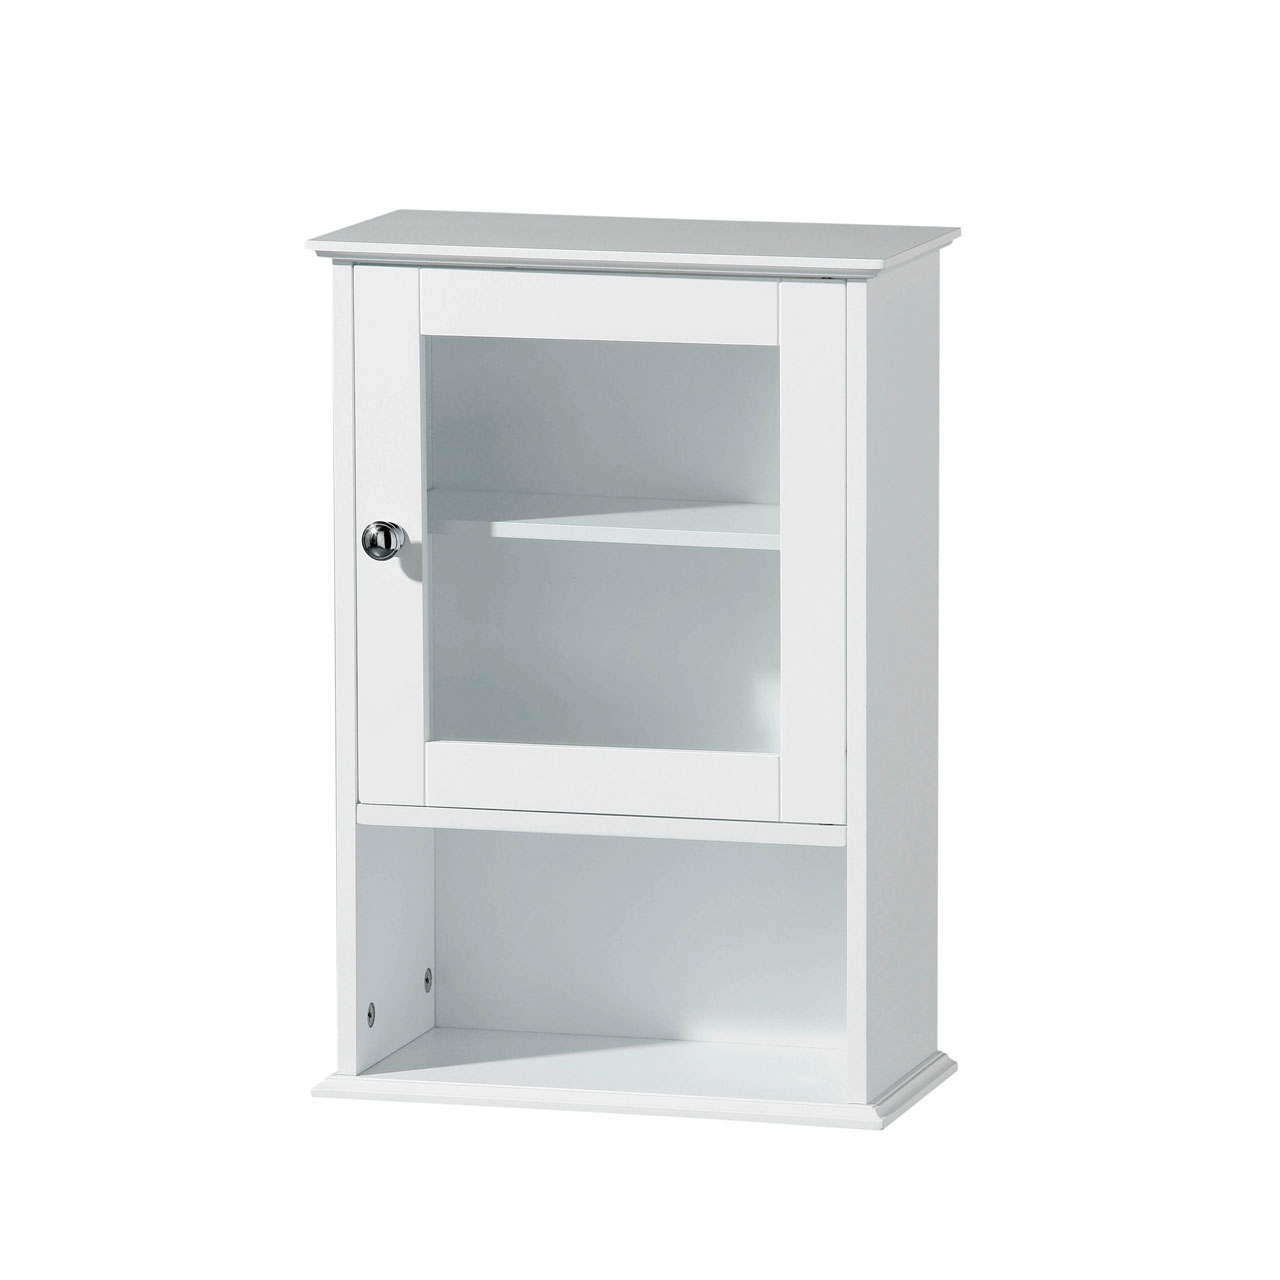 White Wood Wall Cabinet, Chrome Handle, 2 Shelves Bathroom Storage Organizer